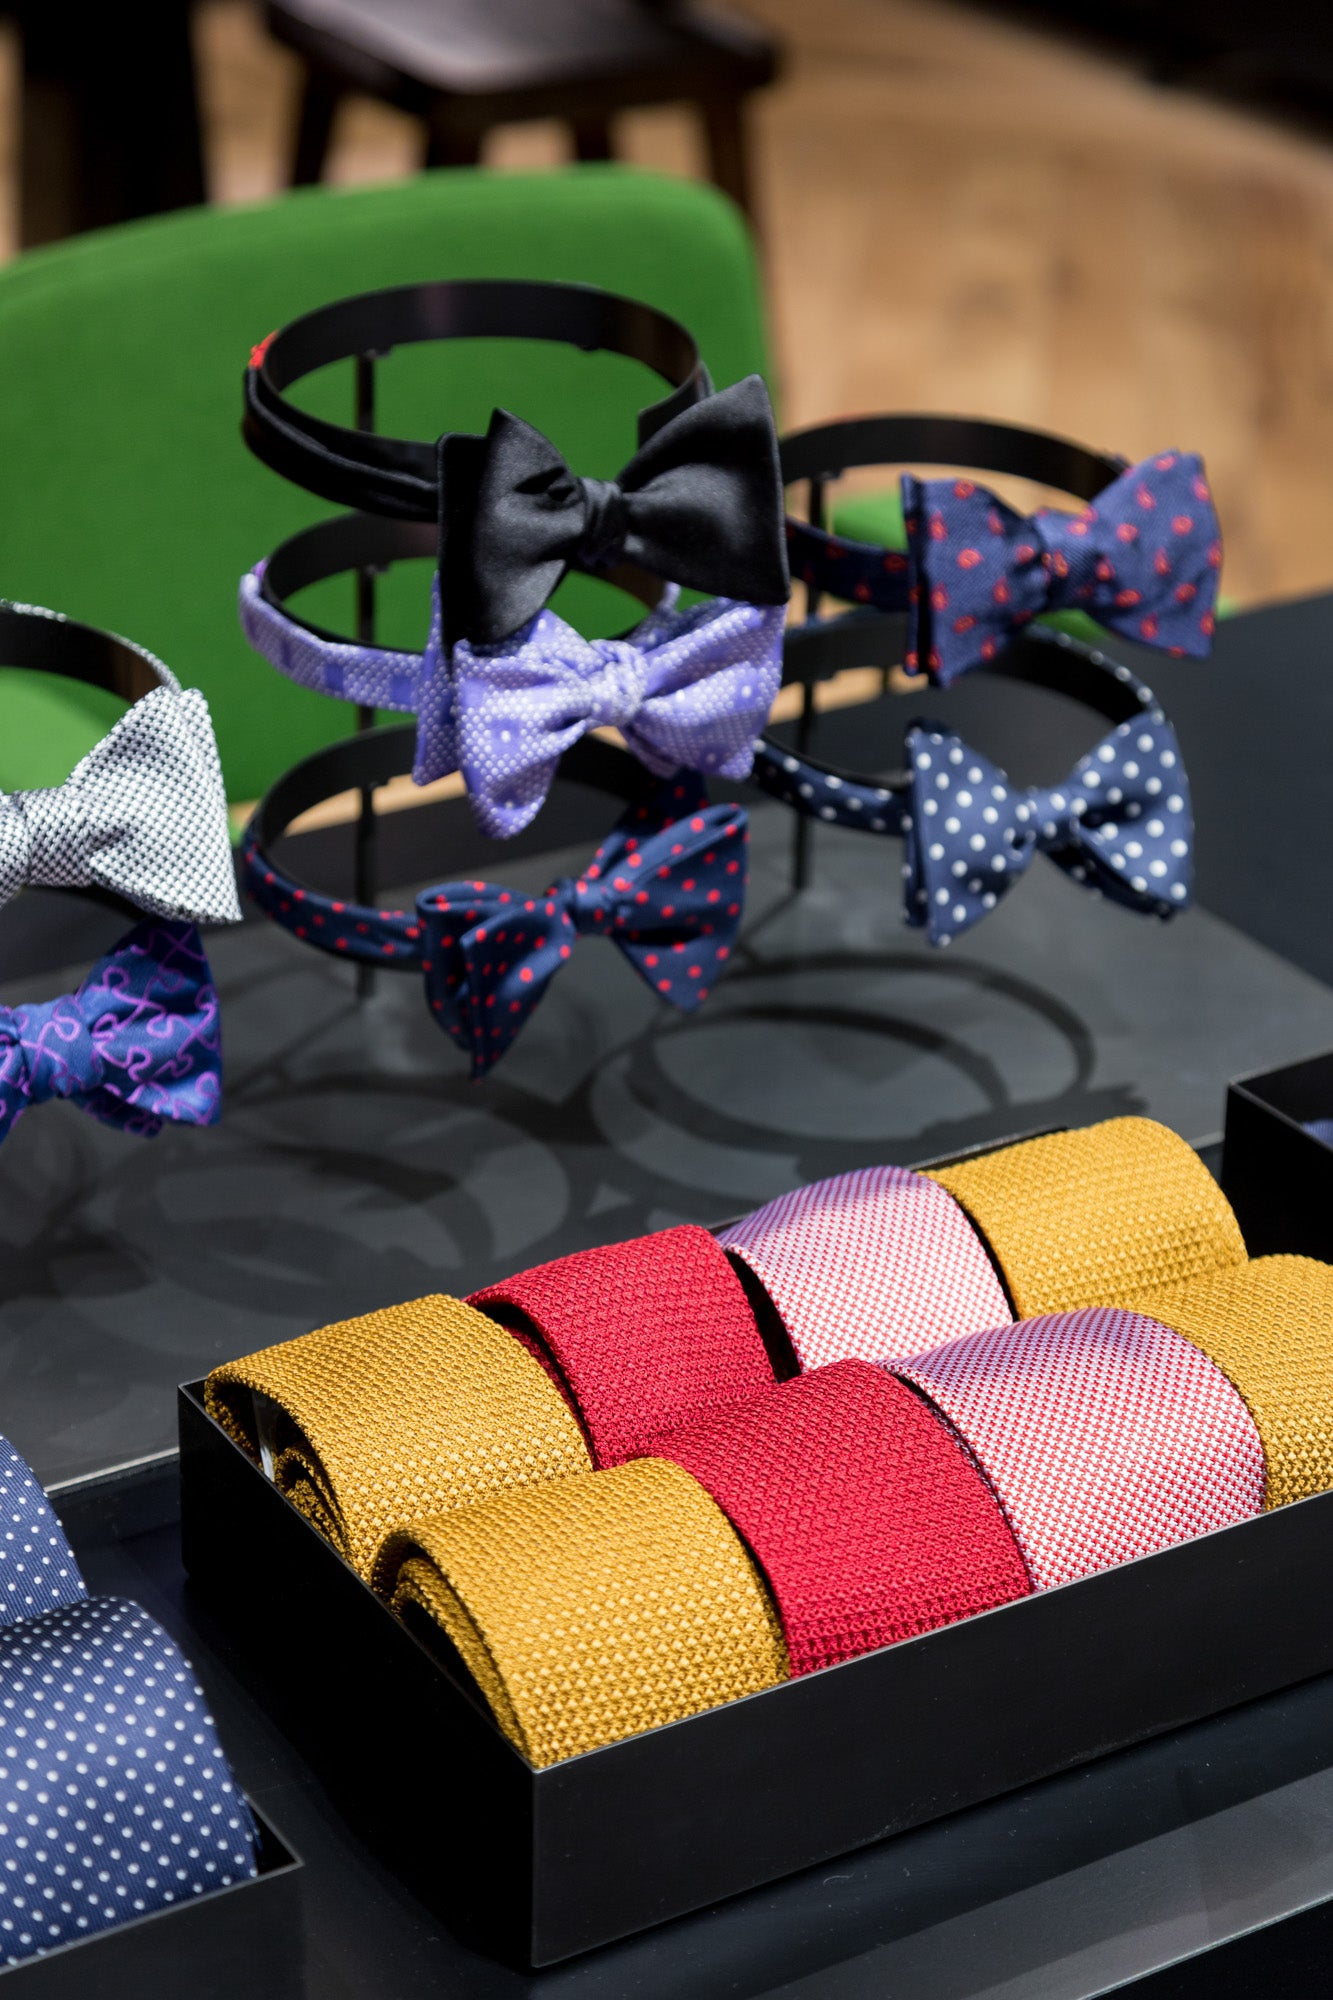 Masculin Singulier focus ties and bow ties papillons